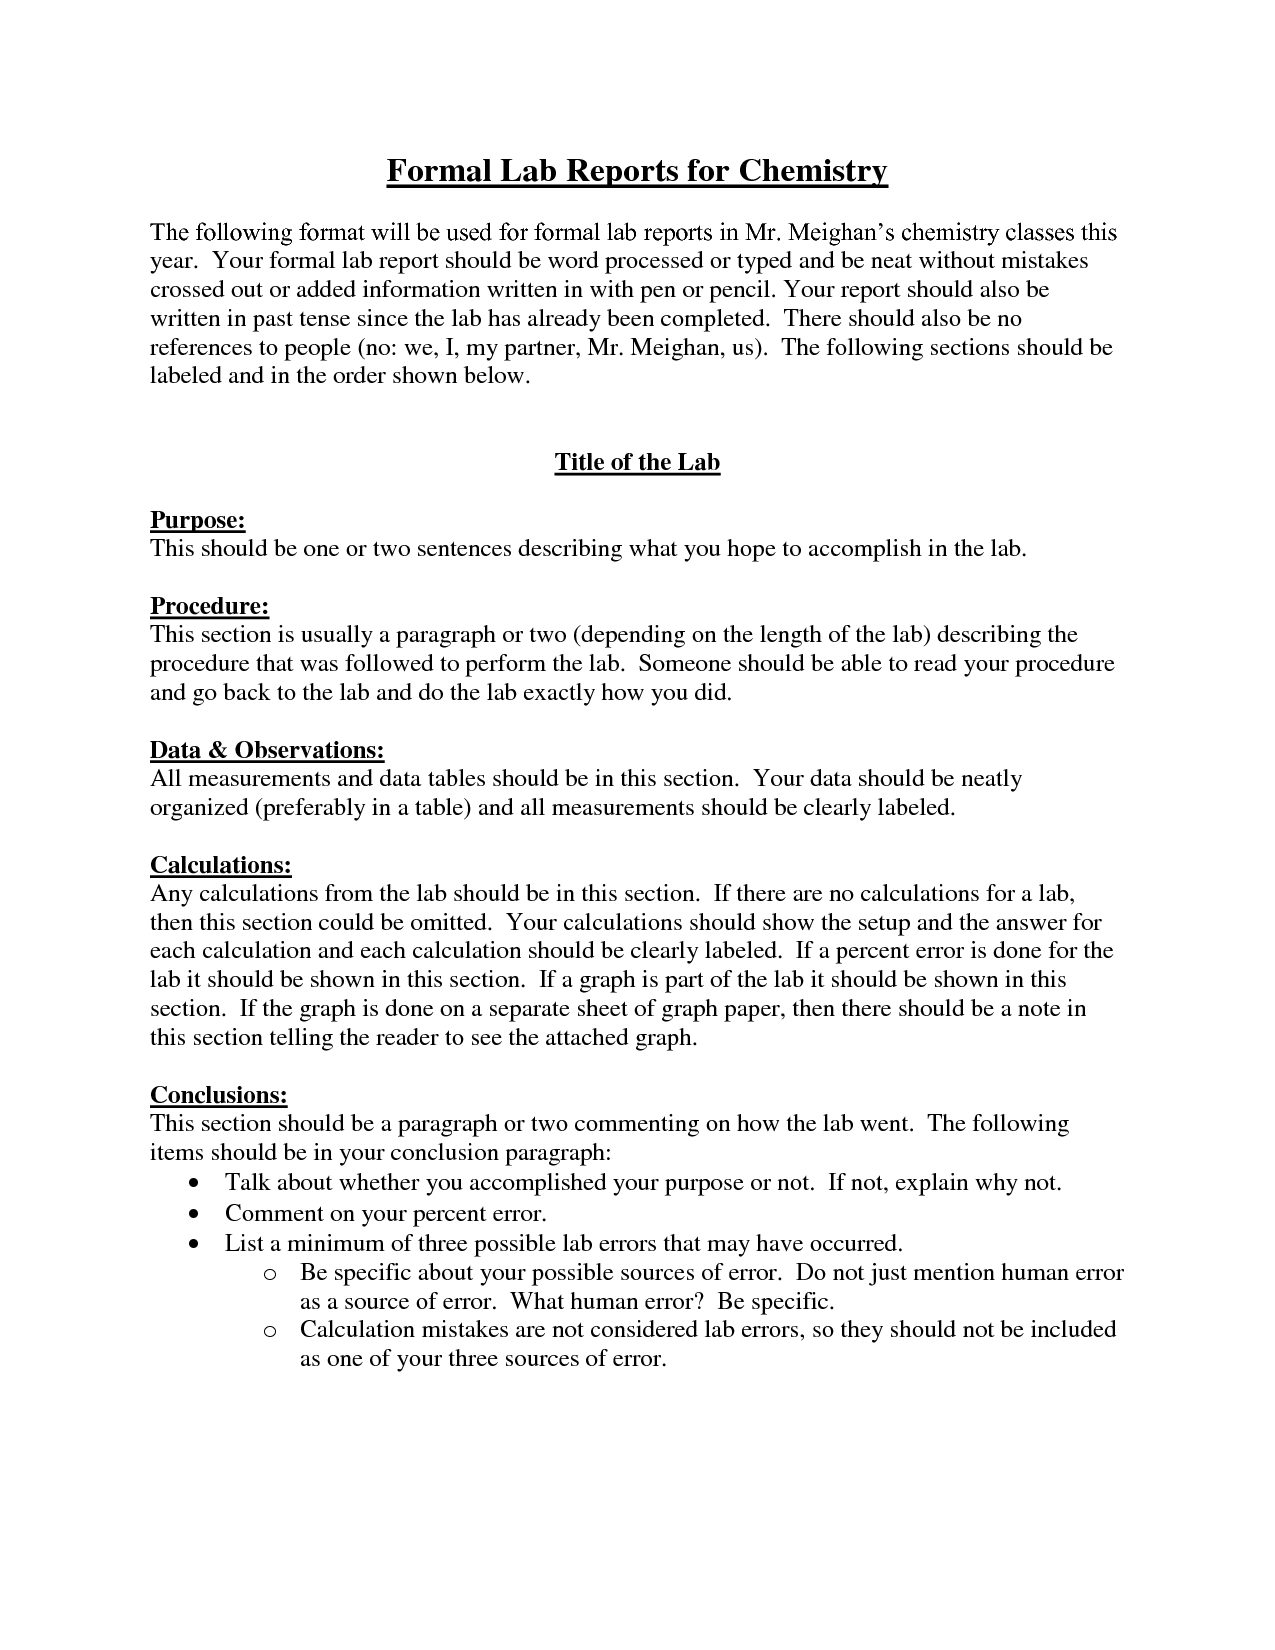 Formal Lab Report Example | laperlita cozumel